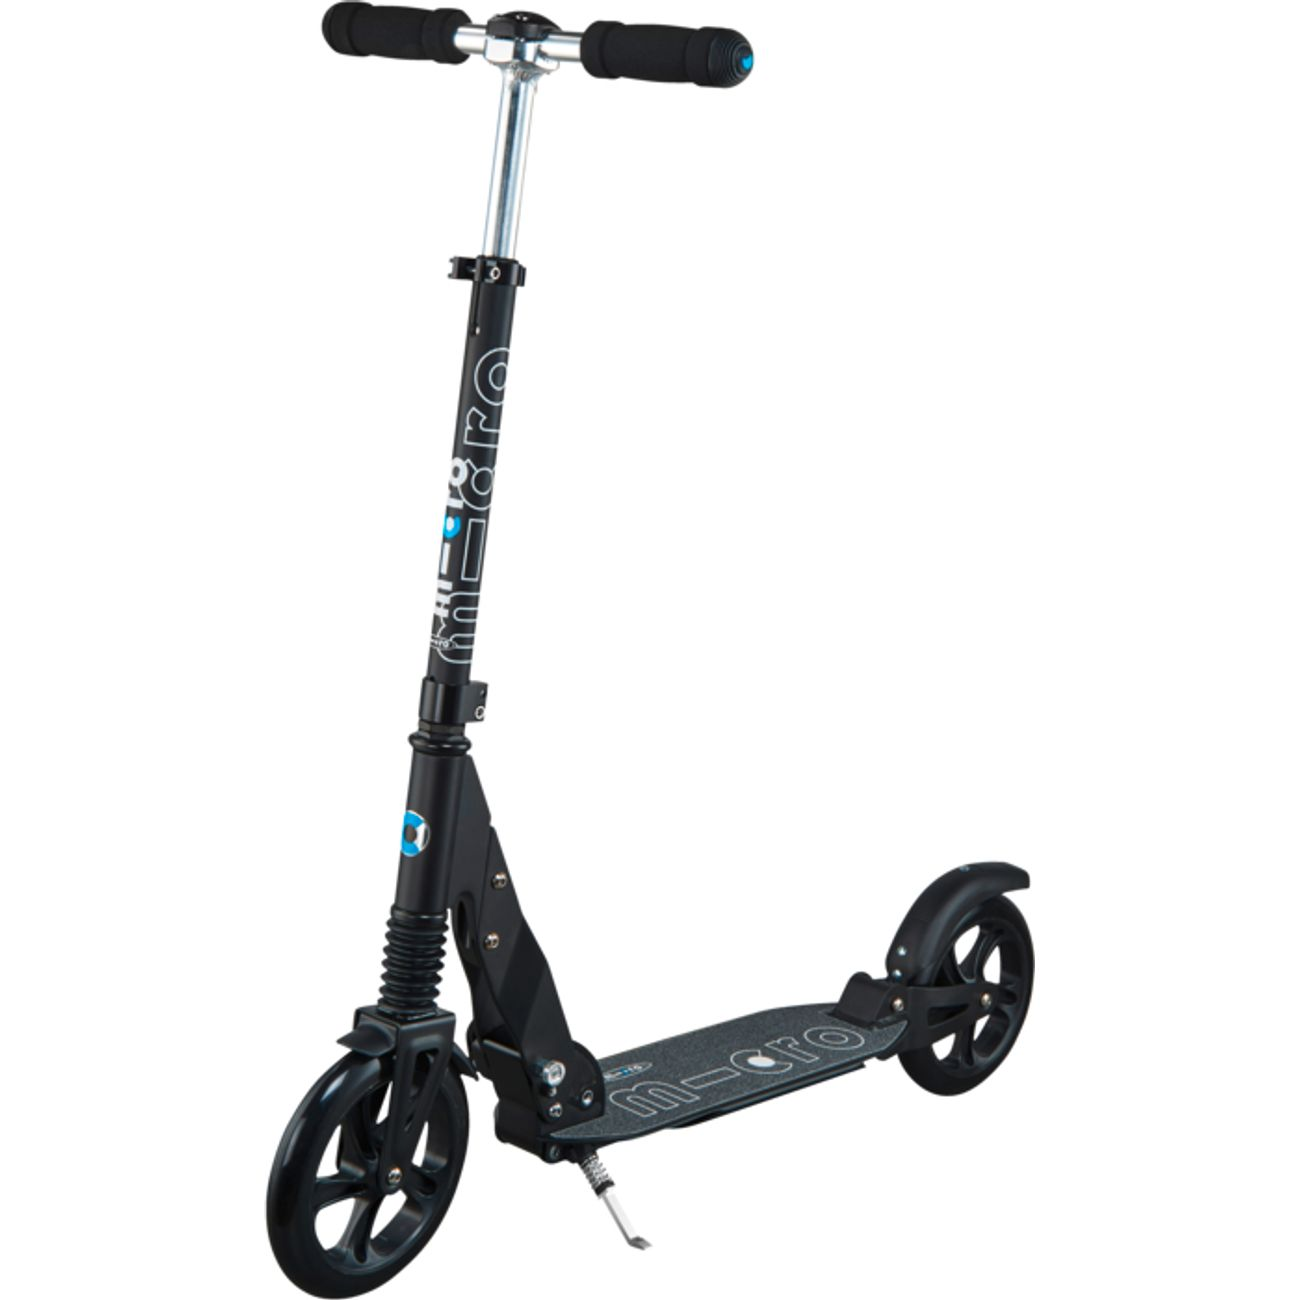 TROTTINETTE Urbain adulte MICRO MICRO SUSPENSION